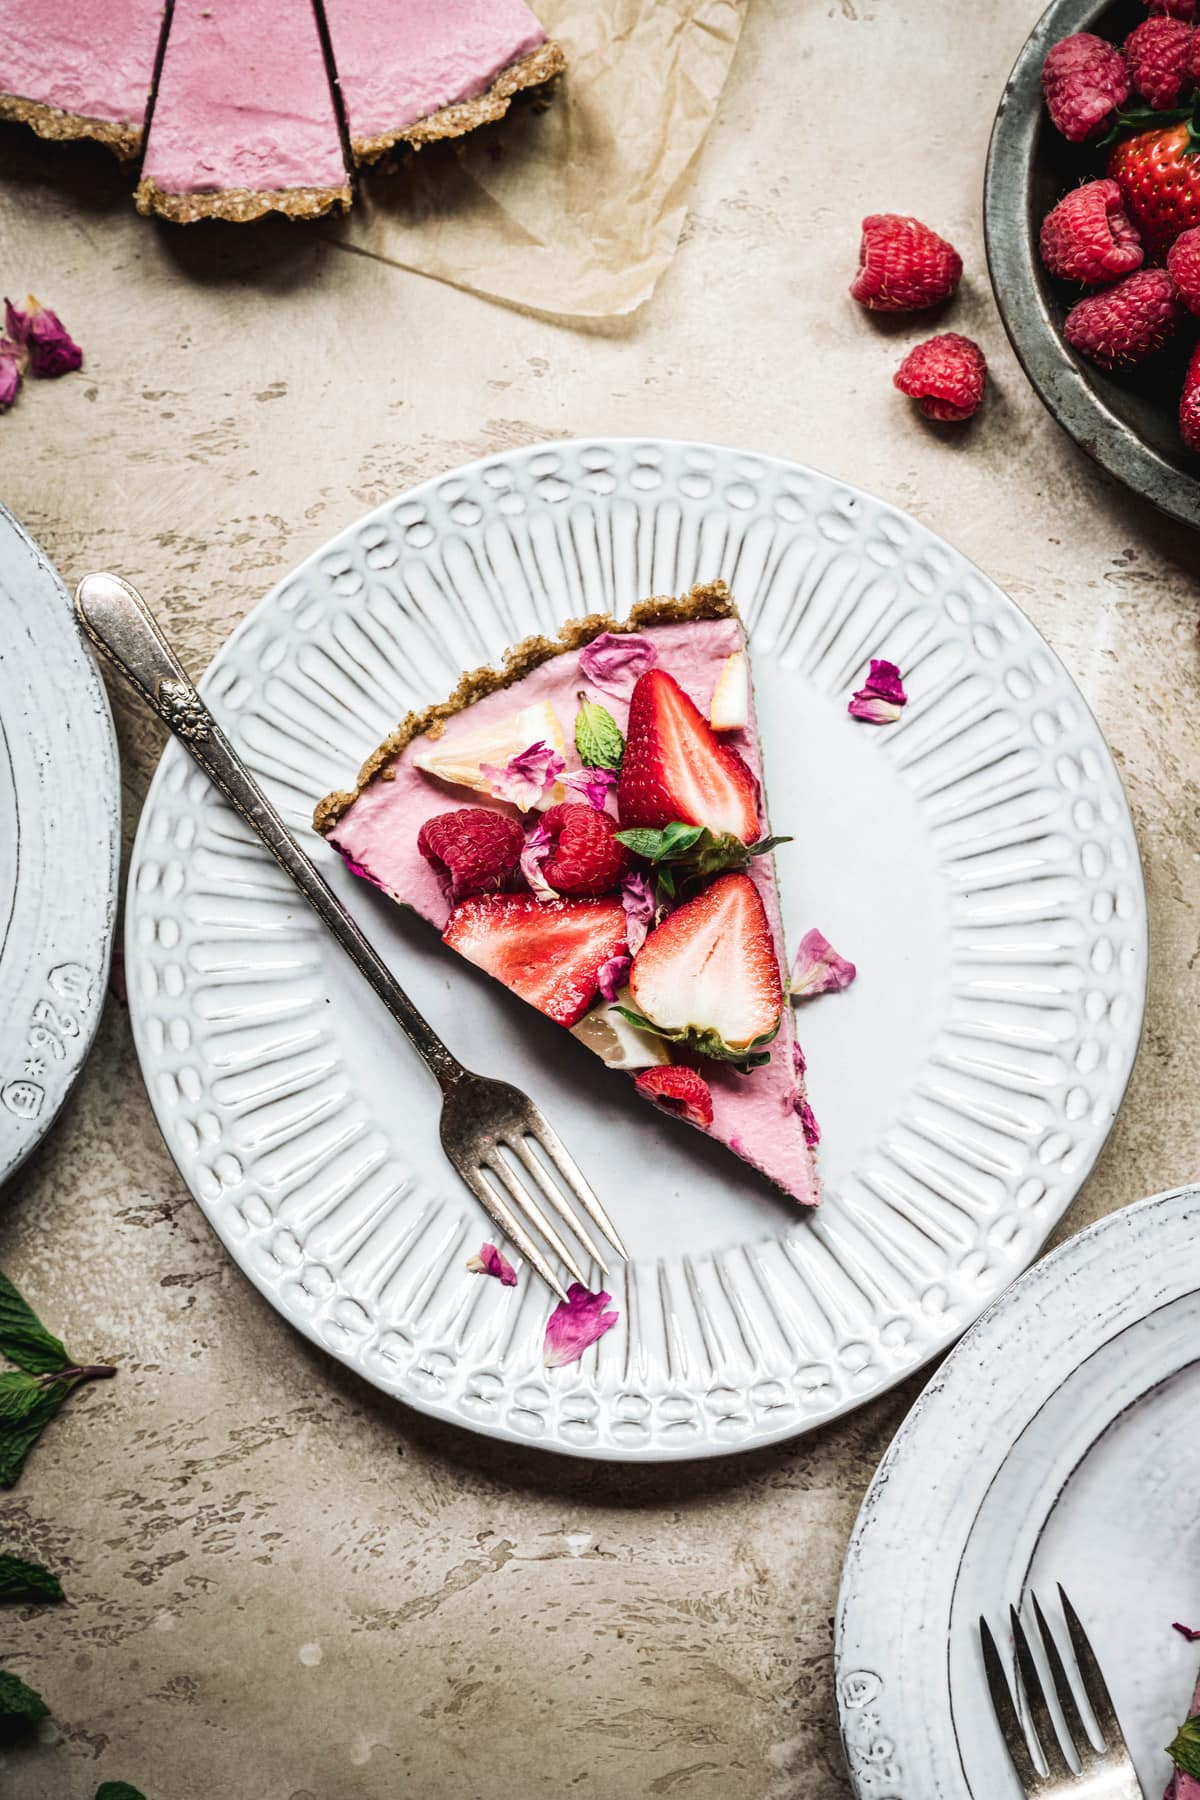 Overhead view of slice of vegan strawberry mousse pie on a white plate